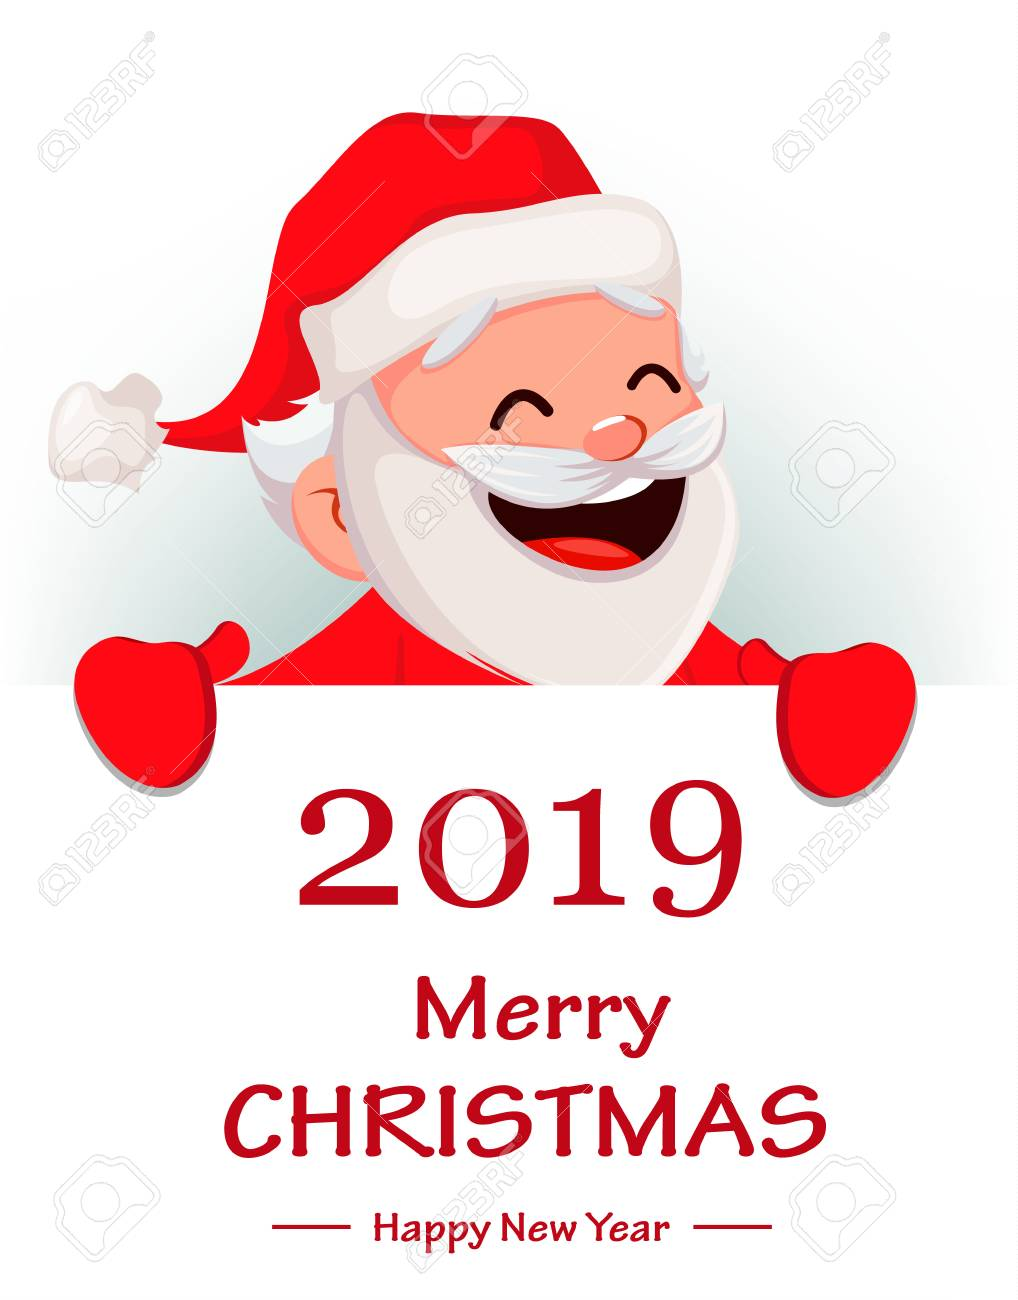 Merry christmas funny santa claus cheerful cartoon character merry christmas funny santa claus cheerful cartoon character holding big placard with greetings m4hsunfo